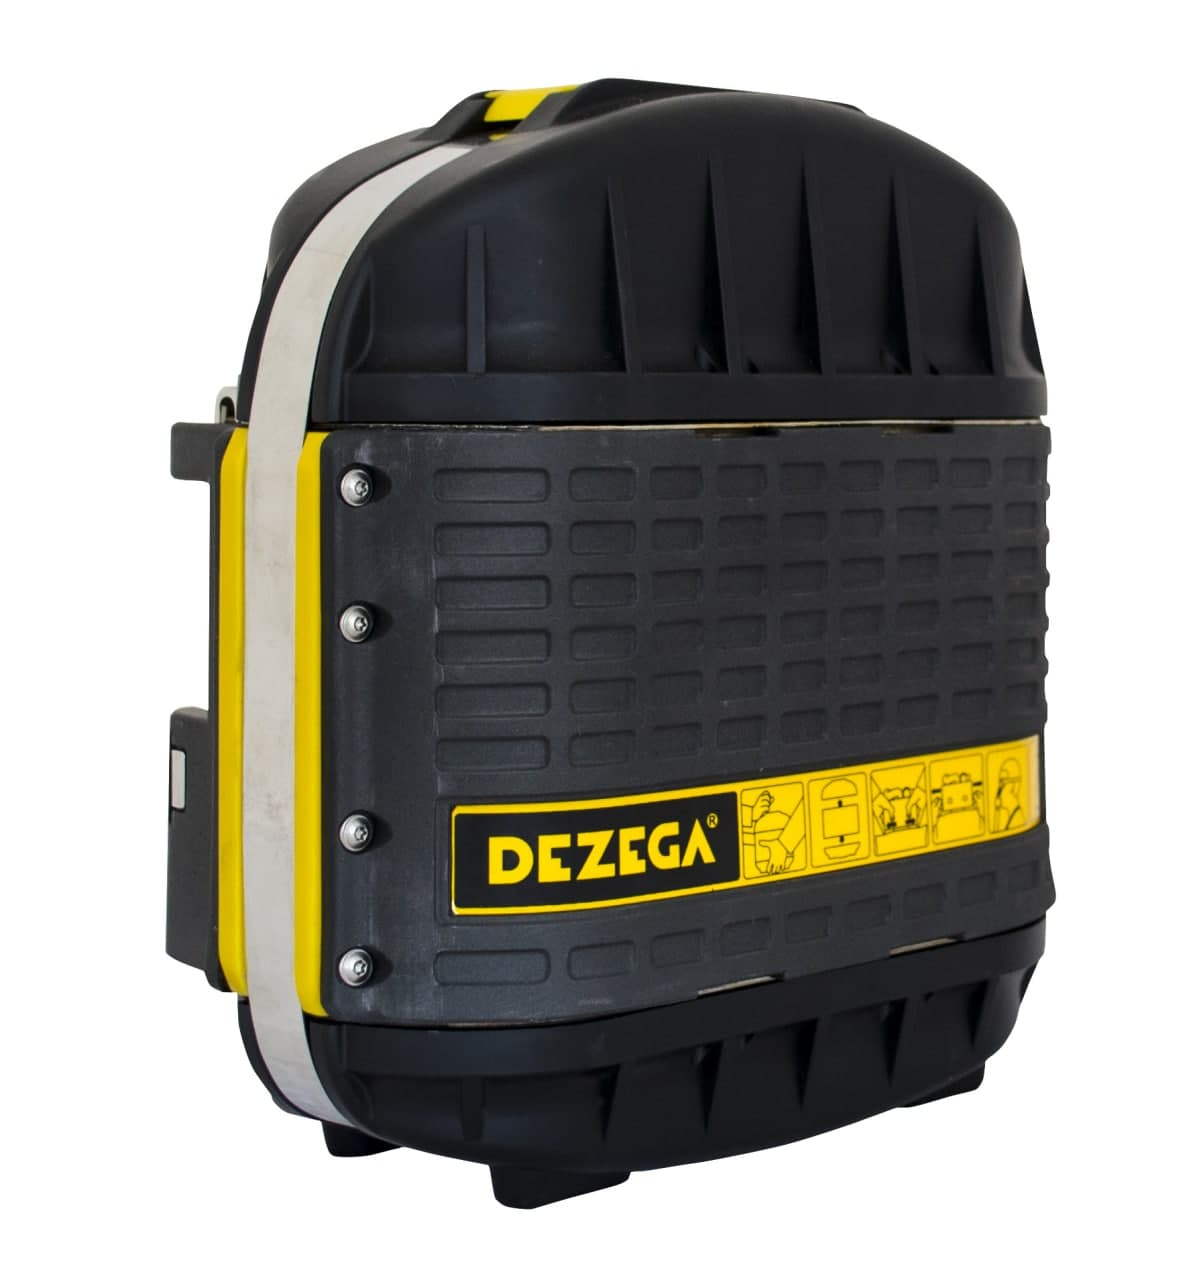 DEZEGA self-contained self-rescuer CARBO-60